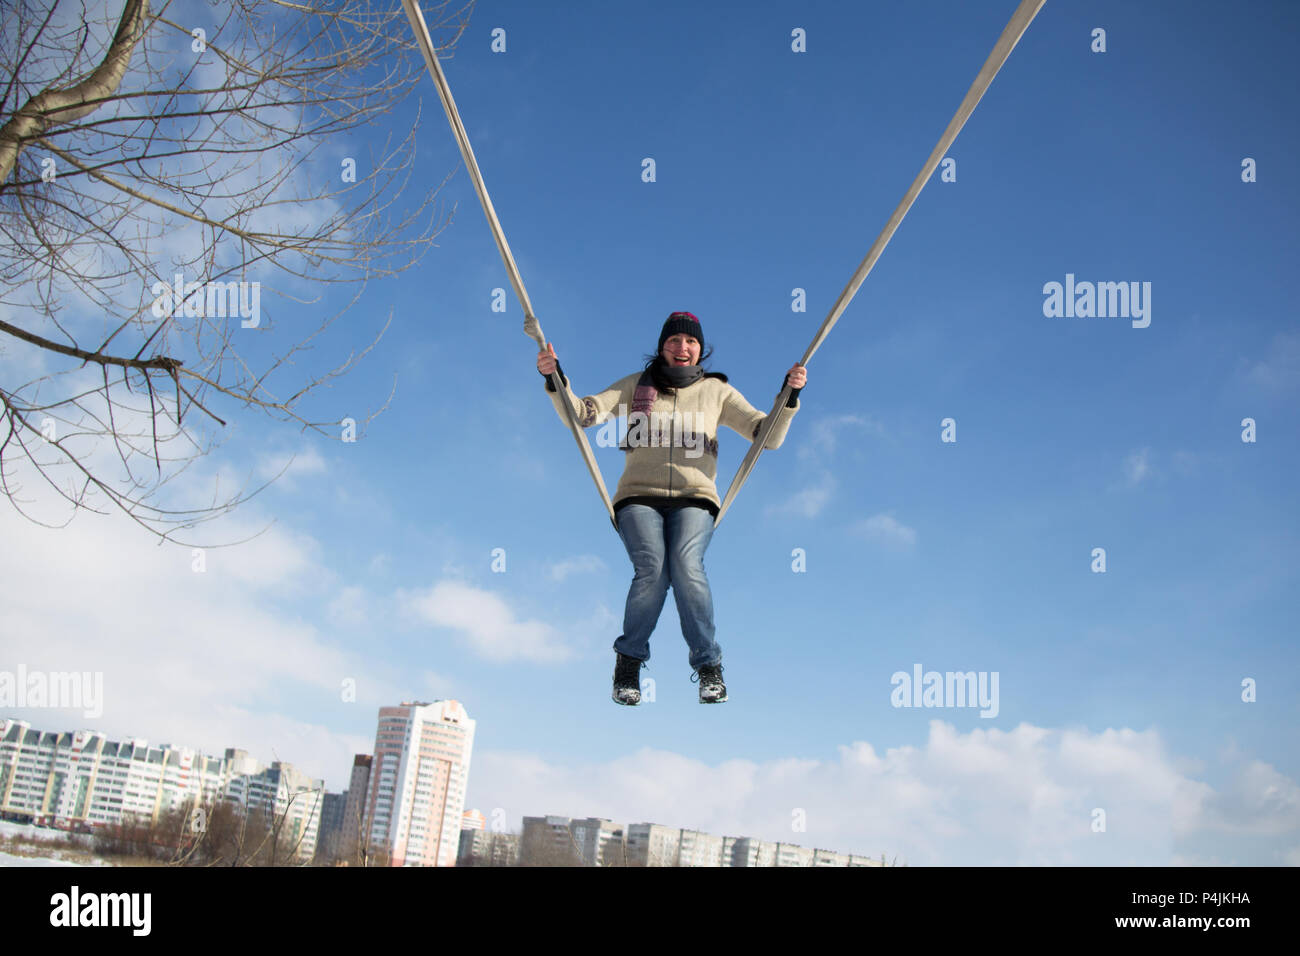 An adult woman rides high on a rope swing - Stock Image